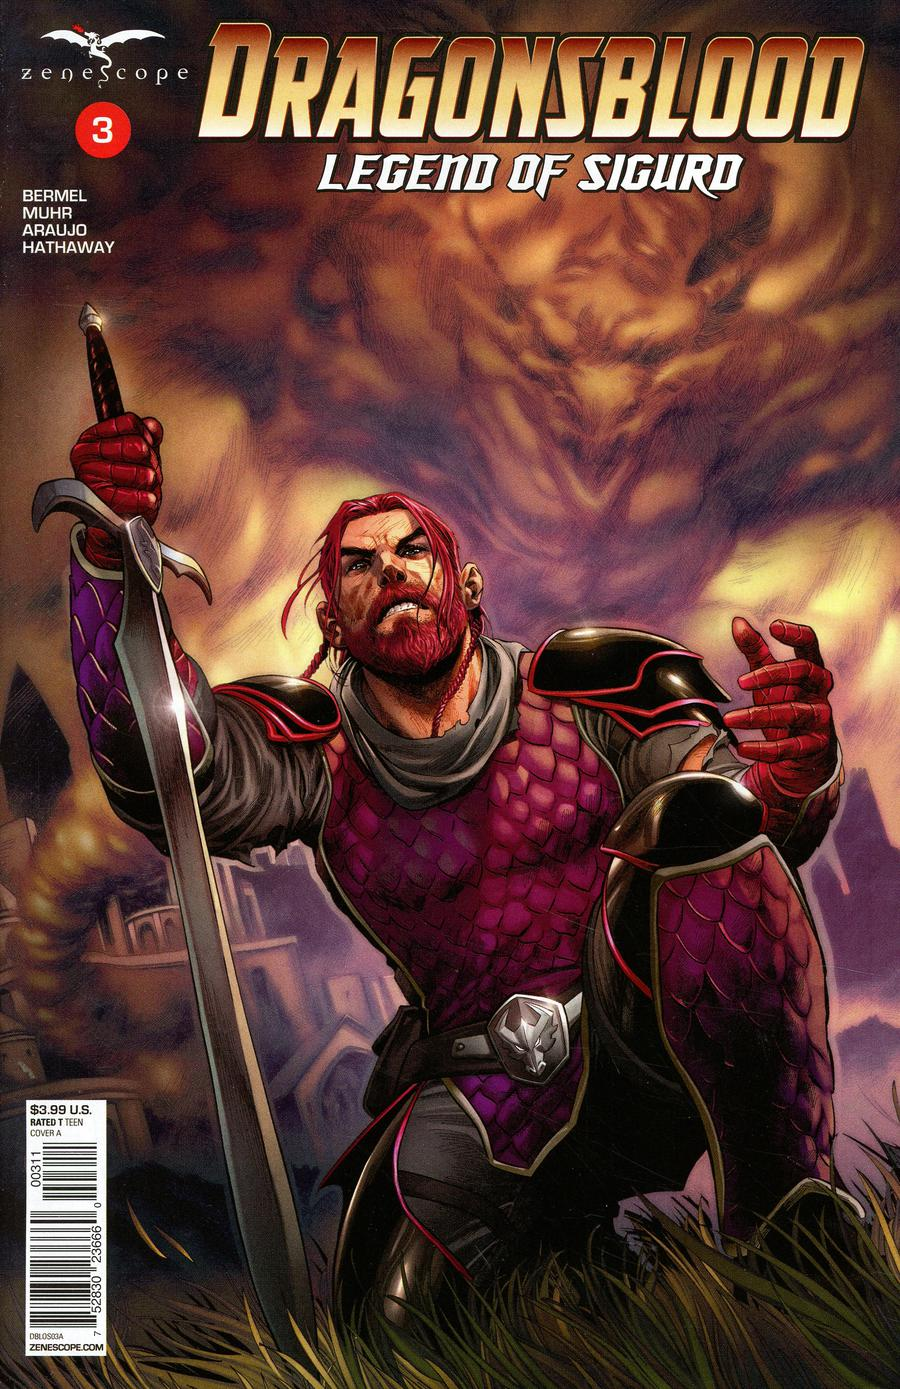 Grimm Fairy Tales Presents Dragonsblood #3 Cover A Martin Coccolo